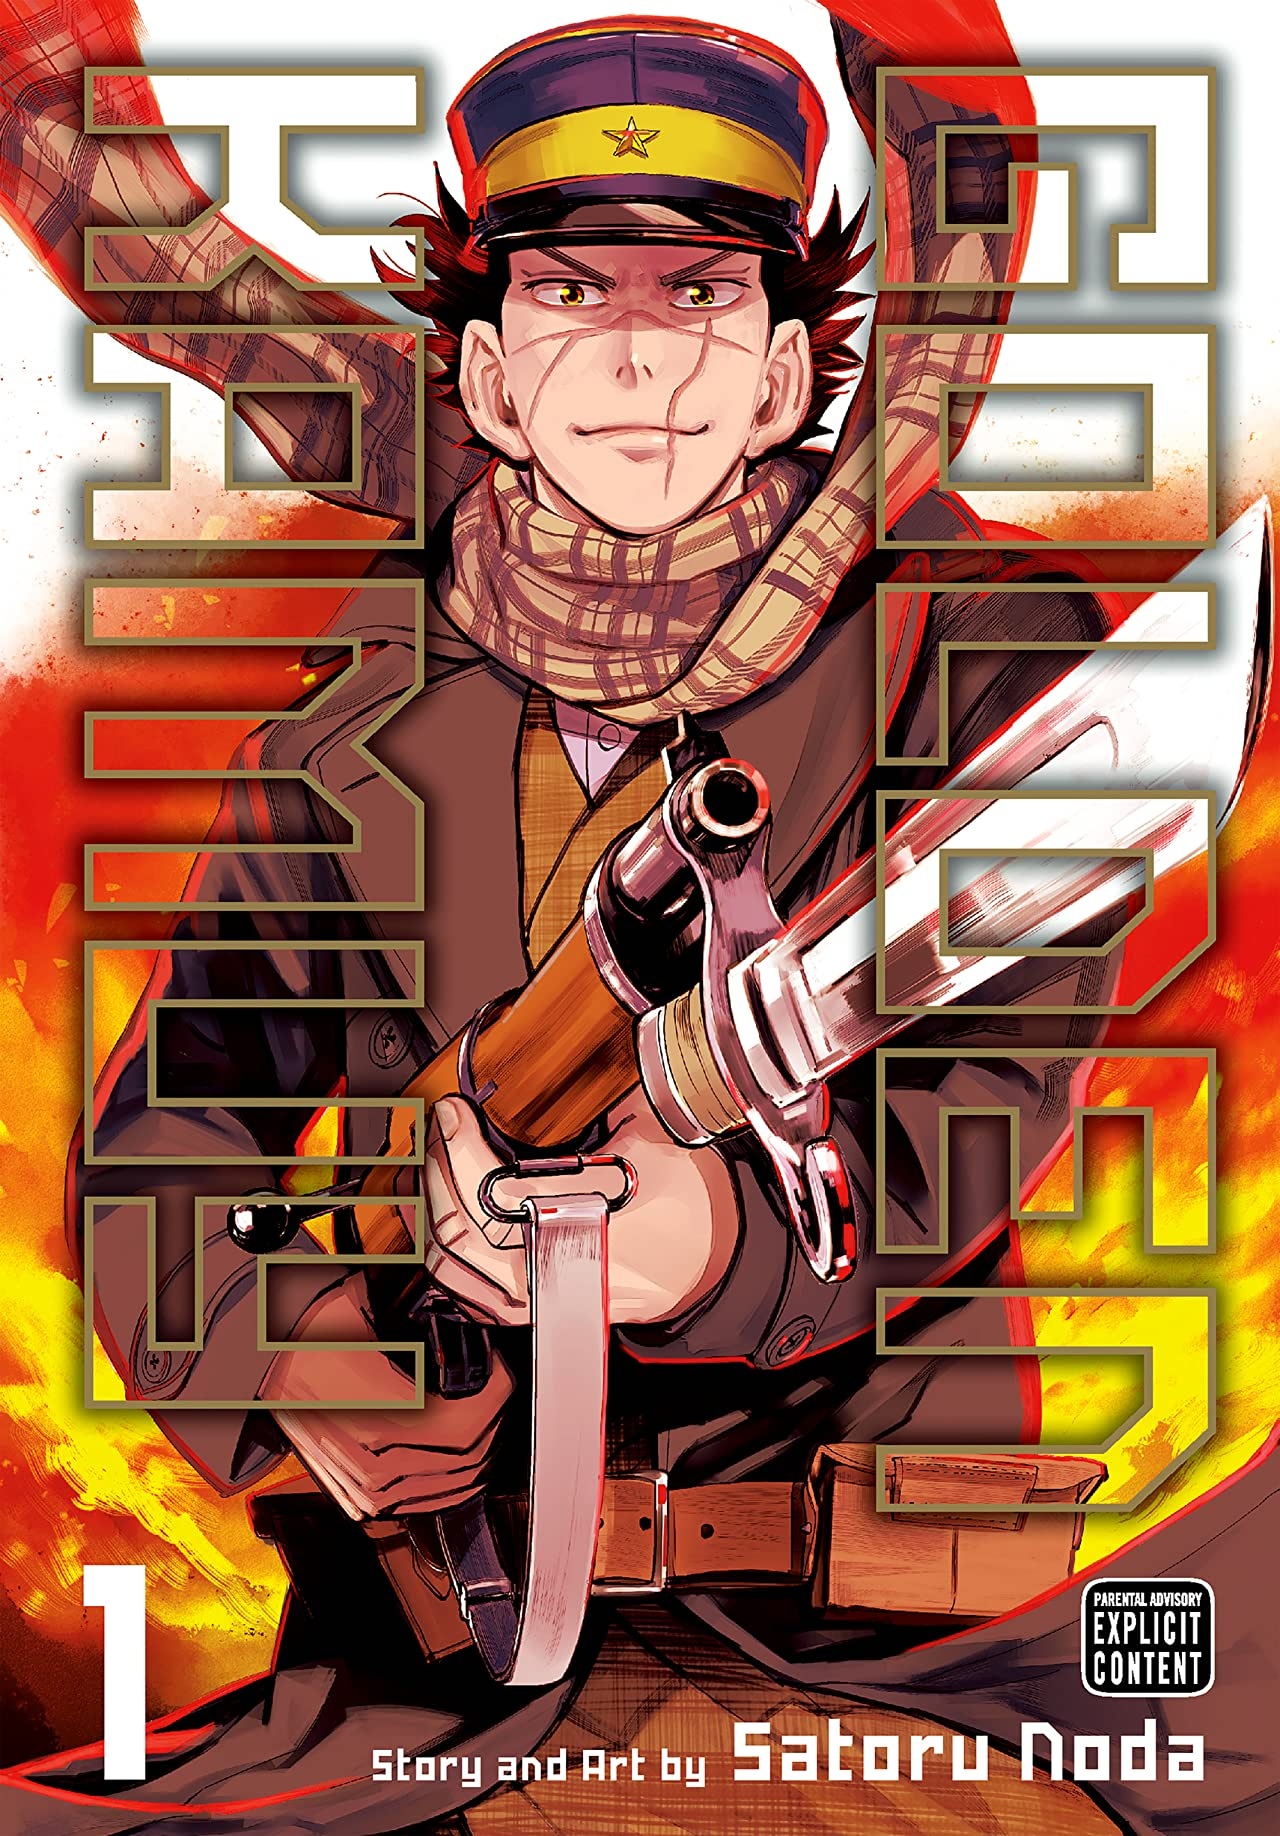 Golden Kamuy Vol. 1